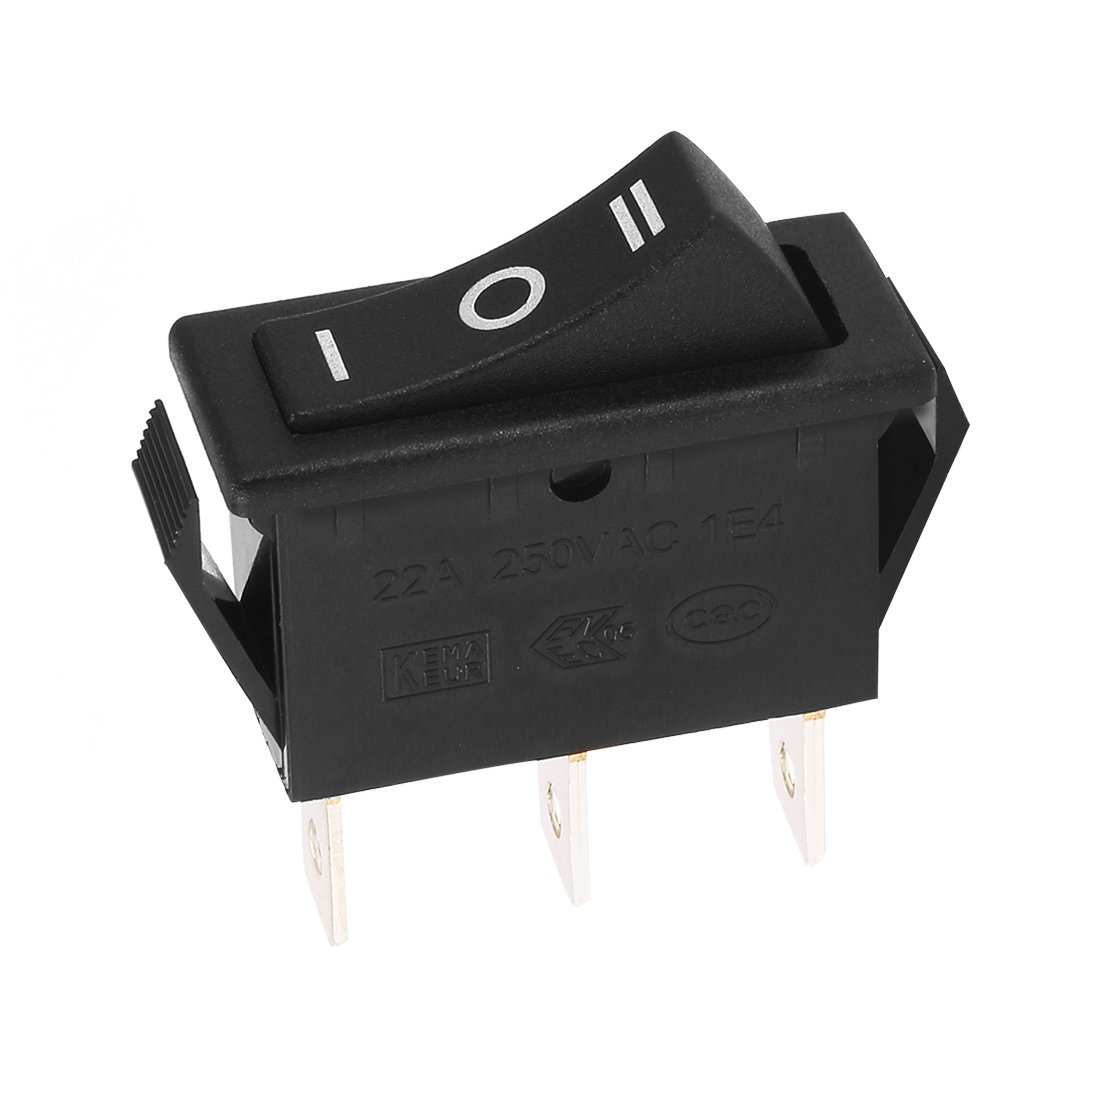 Uxcell Spdt 3p On Off 3 Position Boat Rocker Switch Mini Rockers Illuminated Non Switches Spst Black Ac 20a 125v 22a 250v Home Improvement